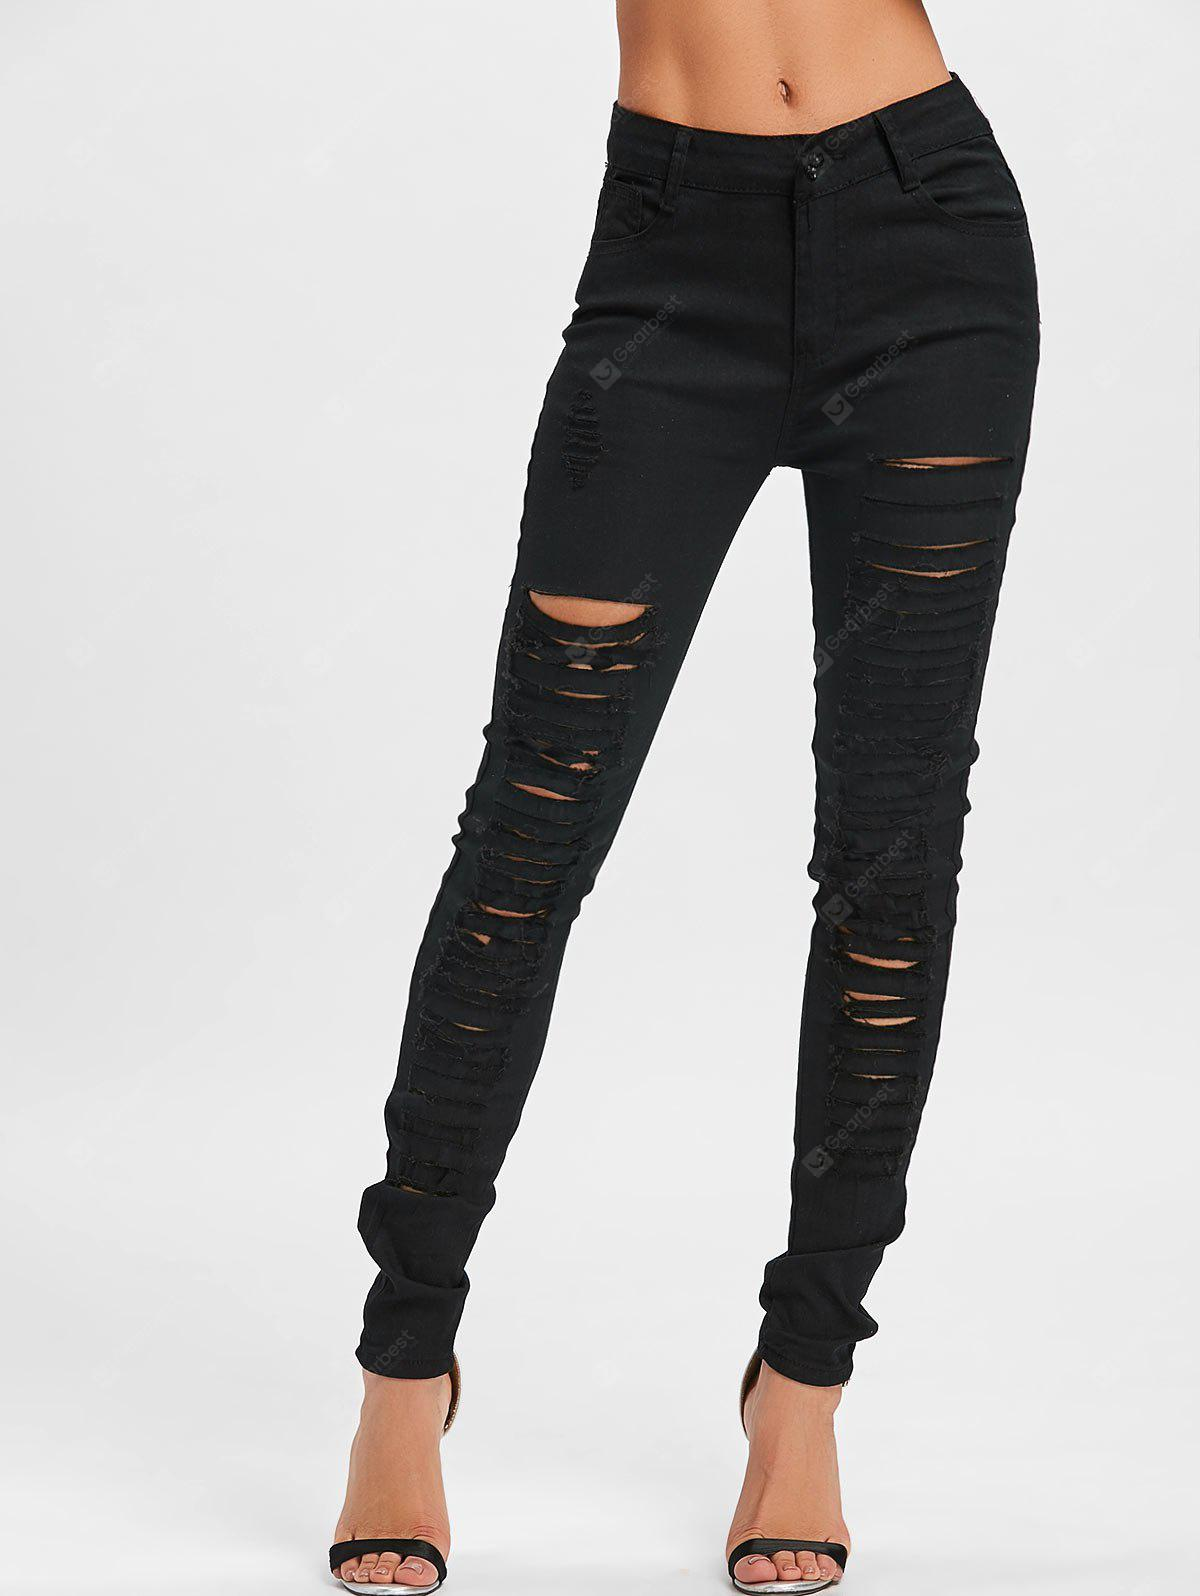 Distressed Skinny Pants with Pockets